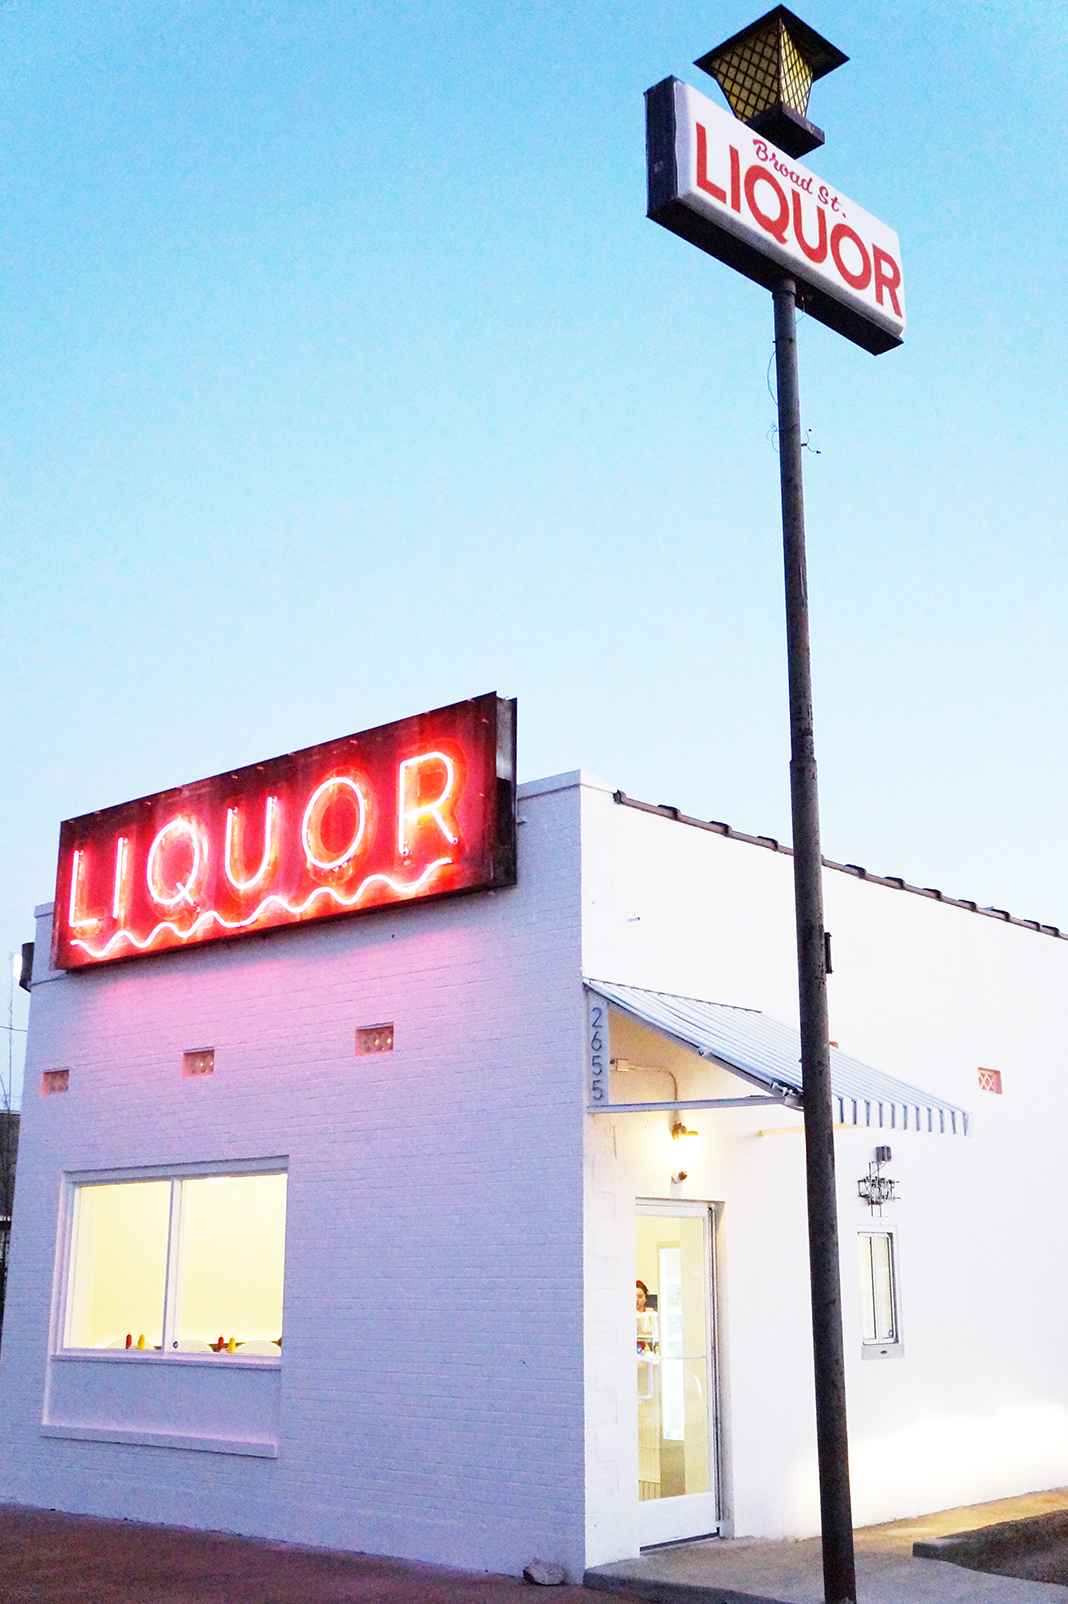 Andrea Fenise Memphis Fashion Blogger and Memphis Food Blogger reviews Broad Liquor Store restaurant